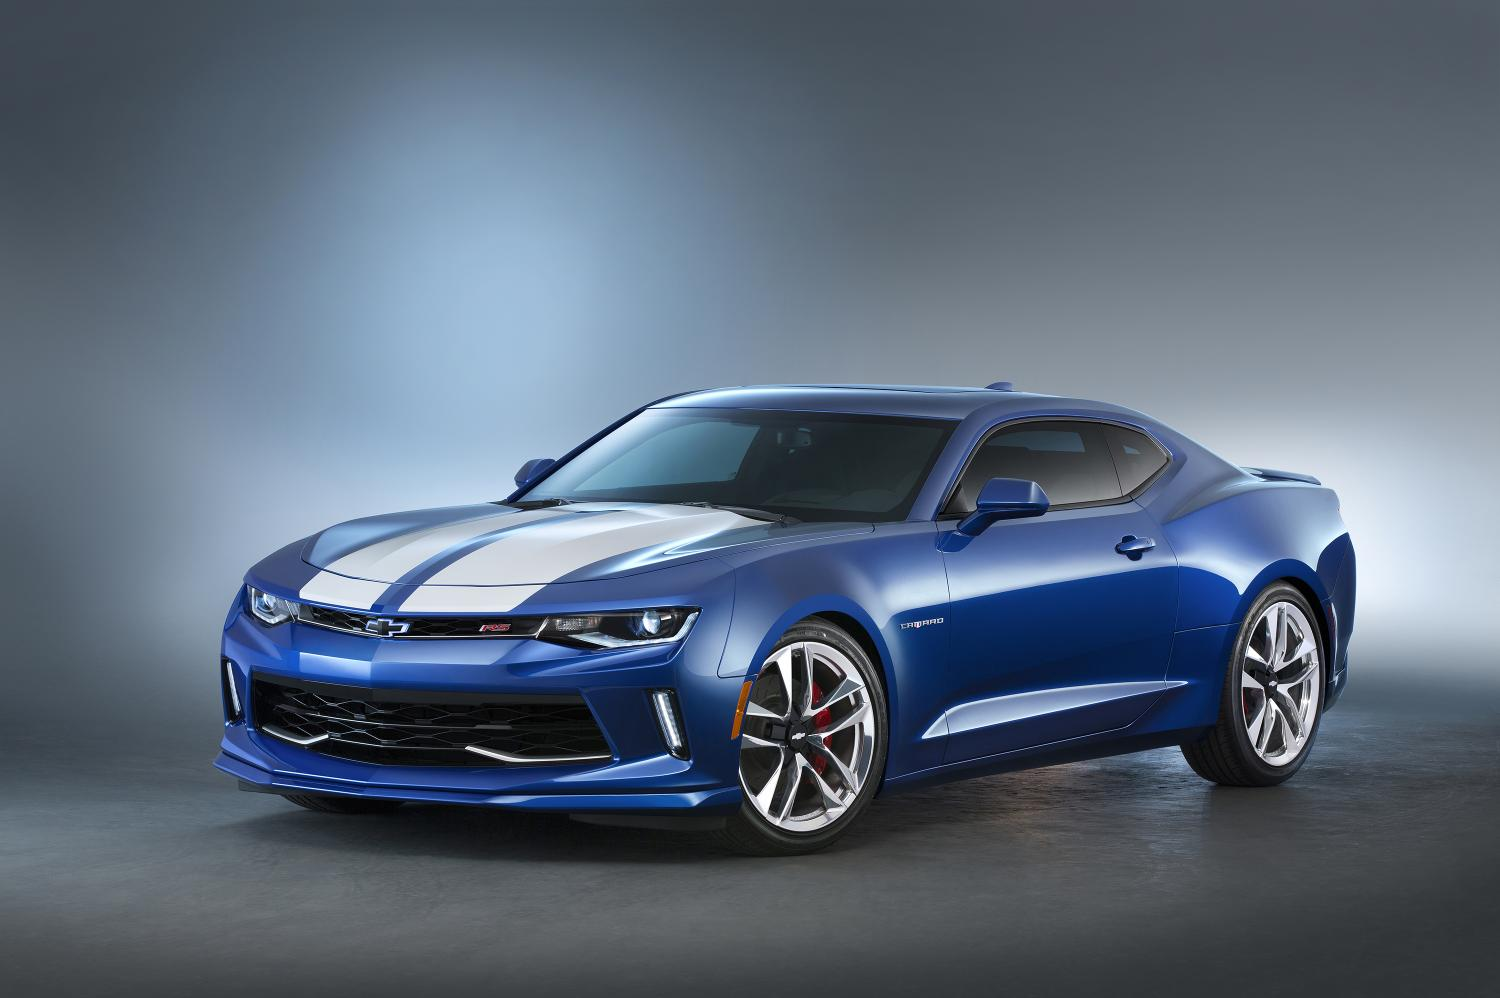 2016 chevy camaro gets 4 custom concepts for 2015 sema show autoevolution